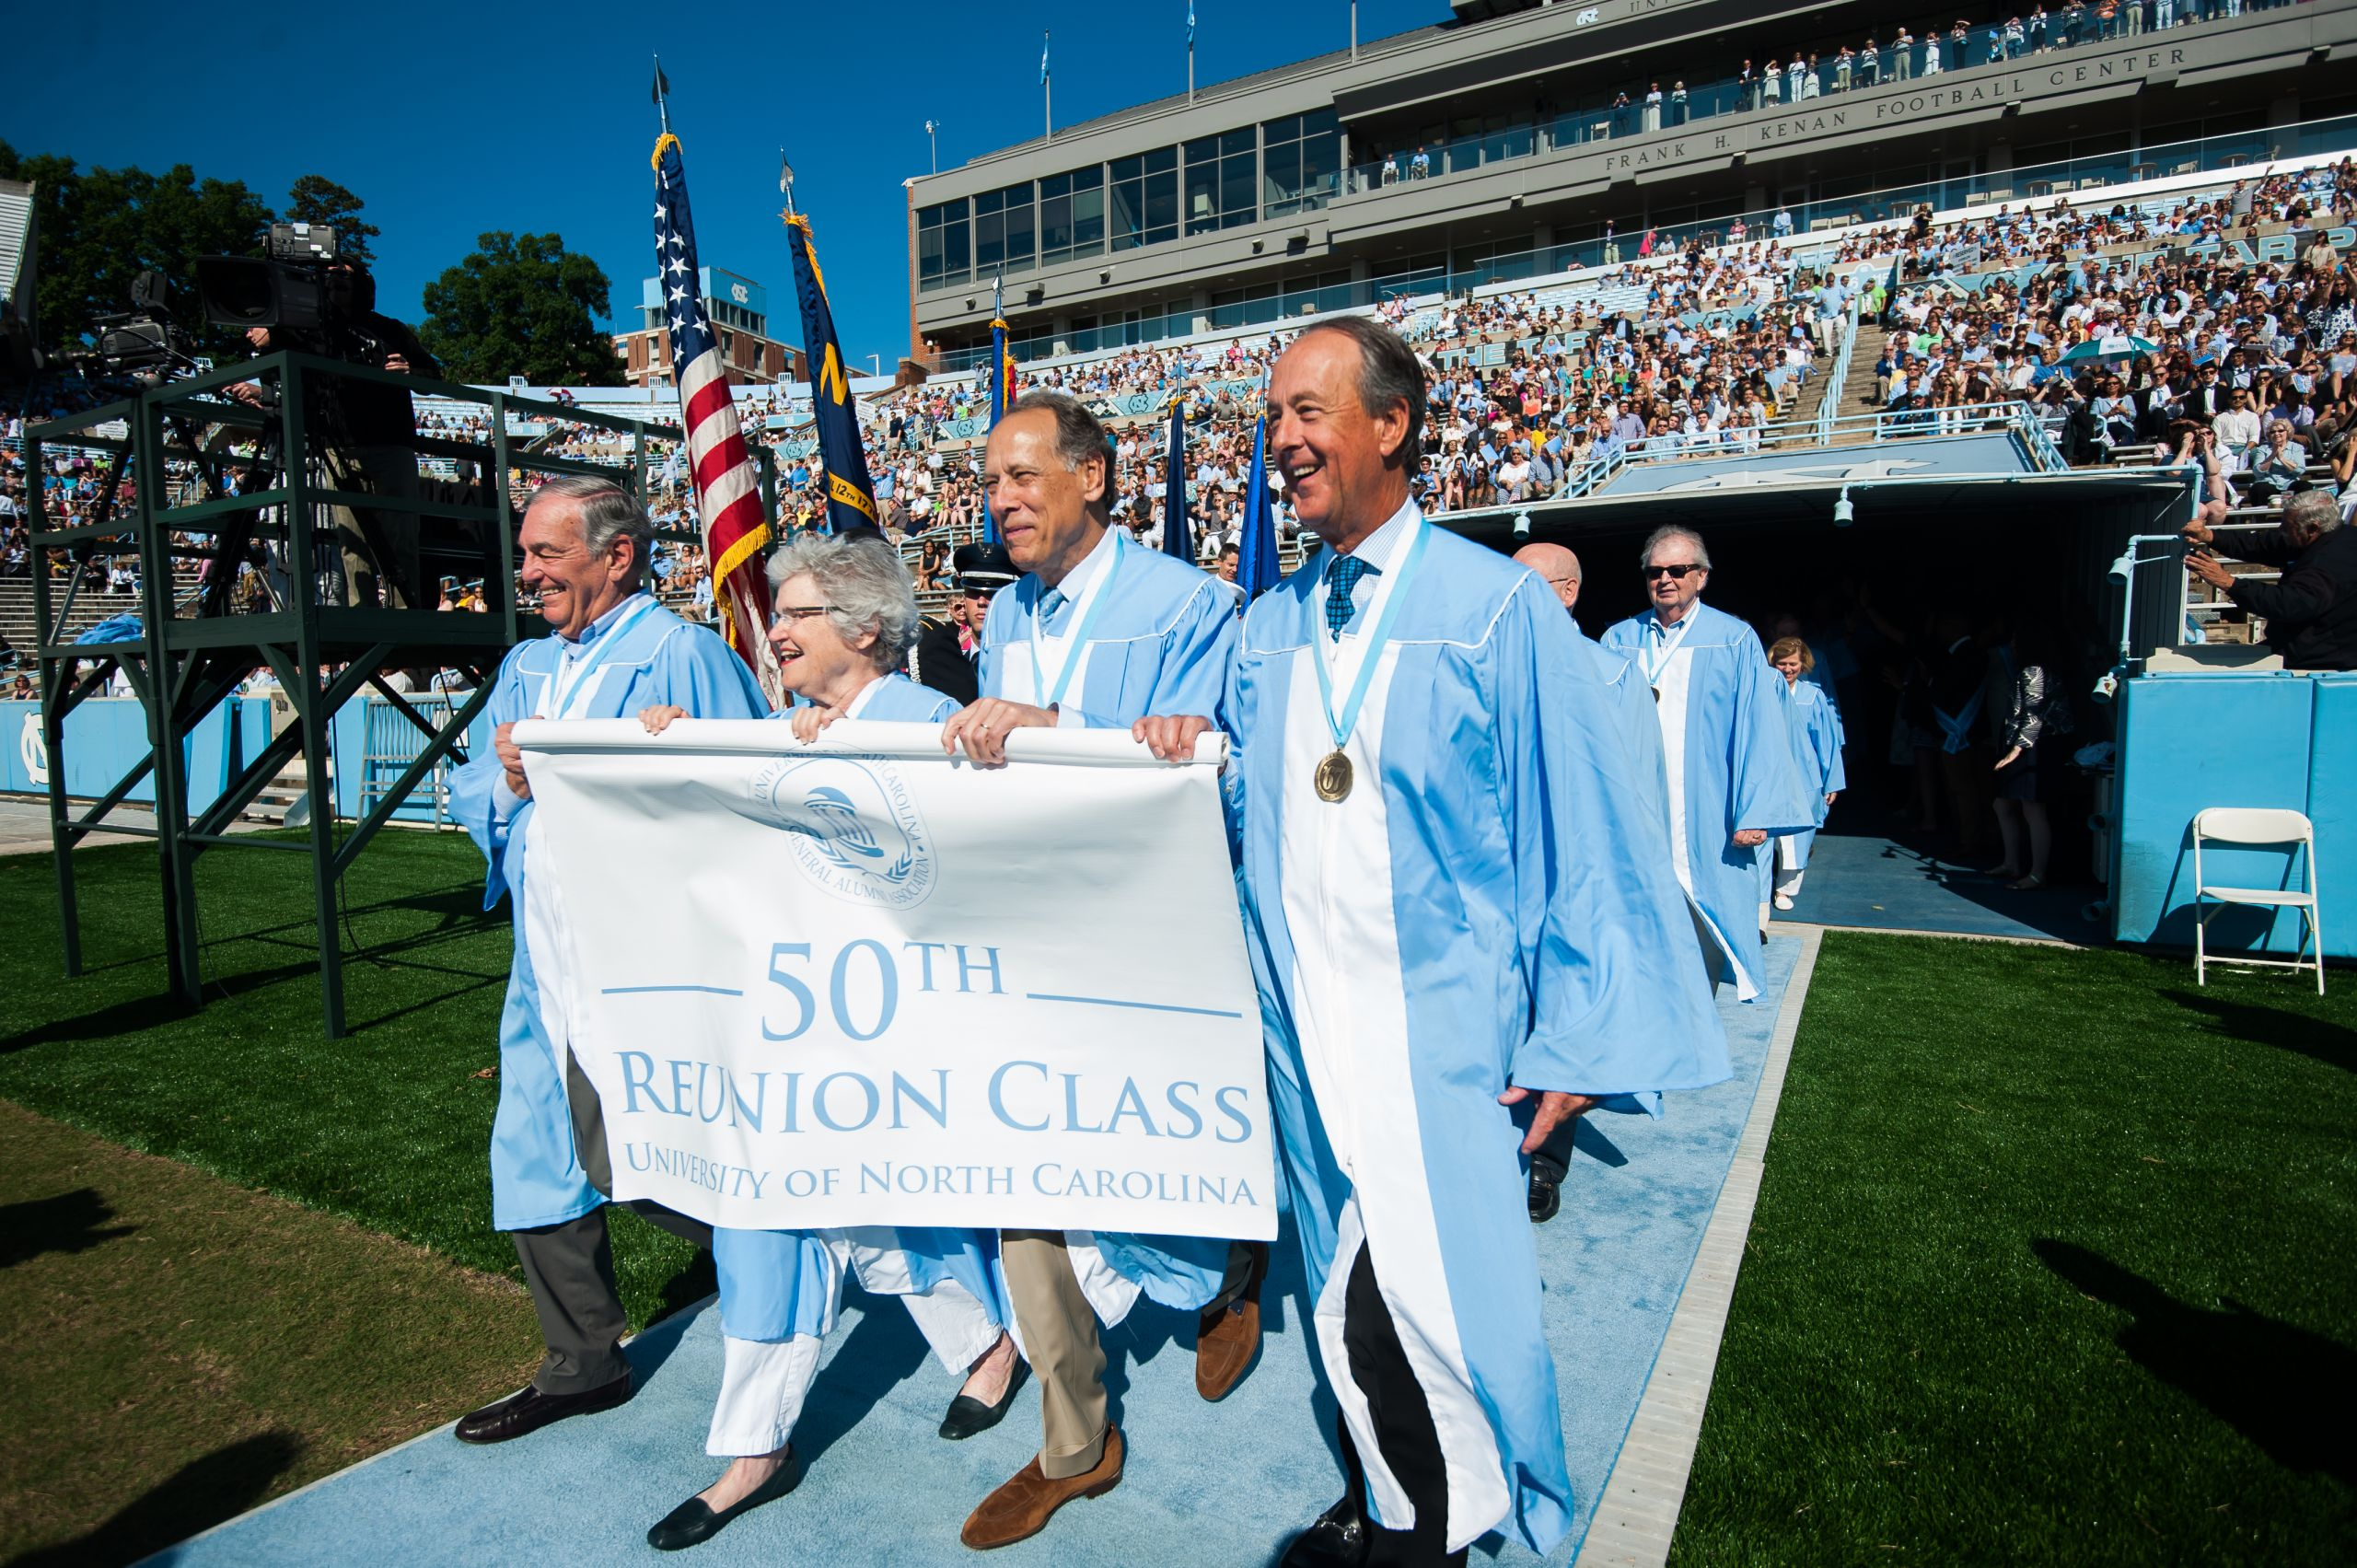 Permanent Class President Jim Brame '67, left, reunion chair Winborne Shaffer Chandler '67, class Vice President Nelson Schwab III '67 and Erskine Bowles '67, former president of the UNC System, lead their classmates in Carolina's Commencement procession. (Photo by Shane Snider)